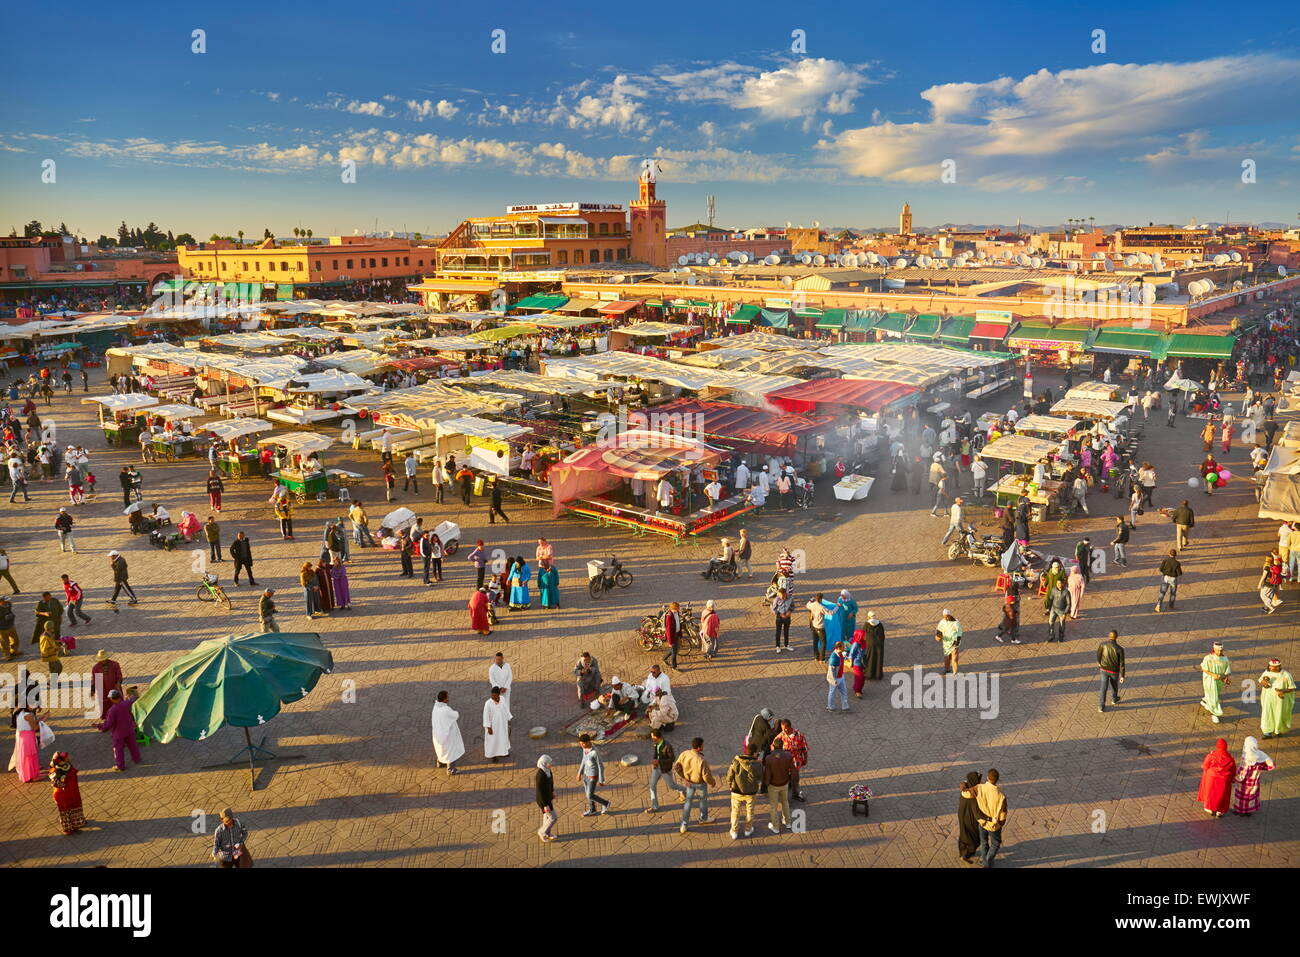 Djemaa el-Fna Square, Marrakech Medina, Morocco, Africa - Stock Image